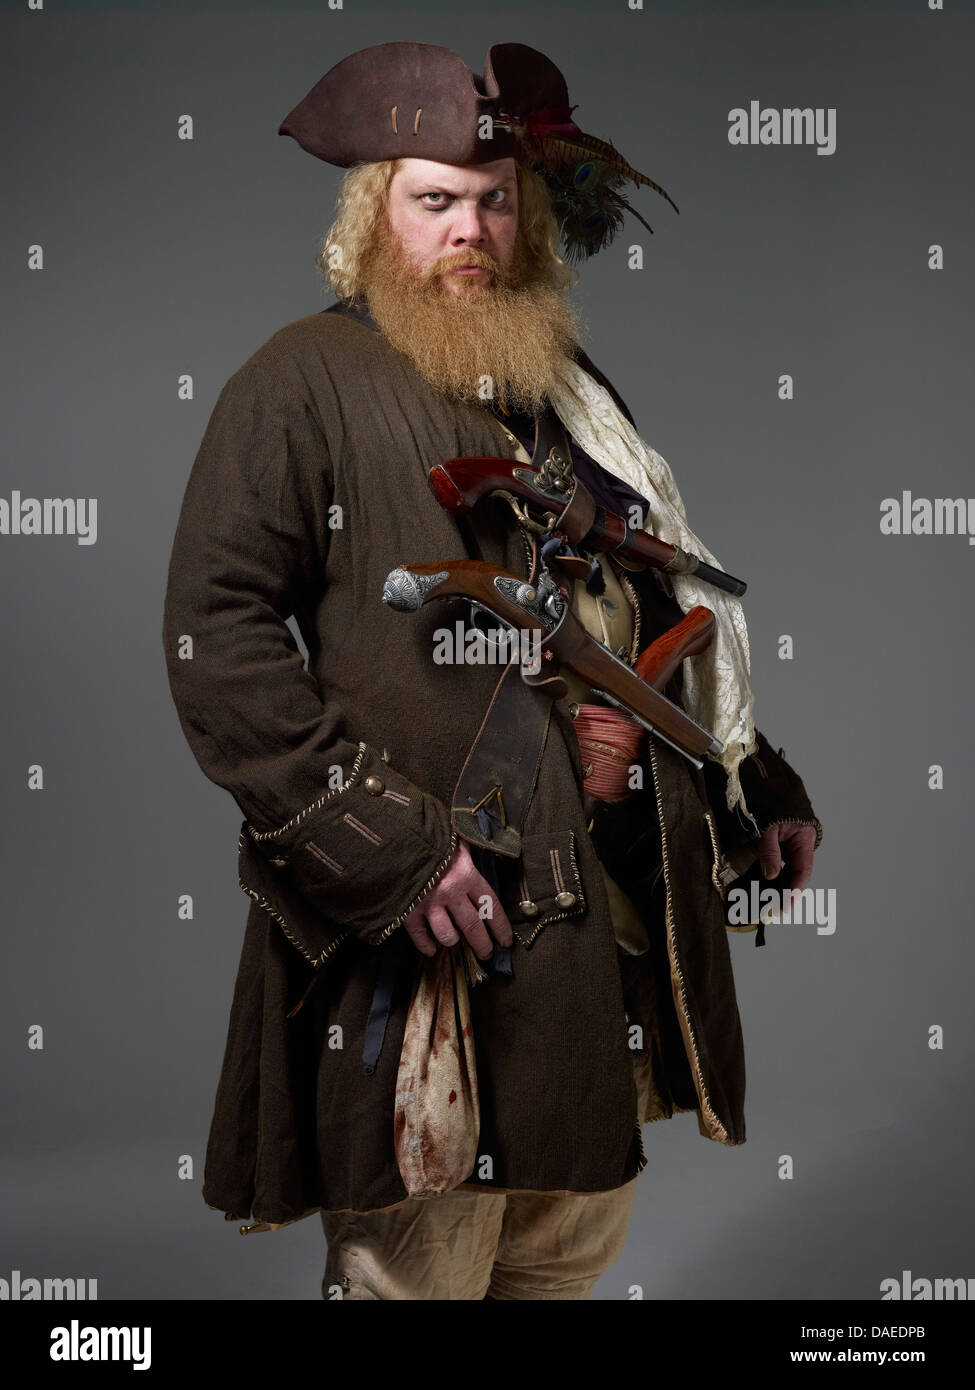 Bearded Pirate with Two Guns Across Chest, Portrait - Stock Image